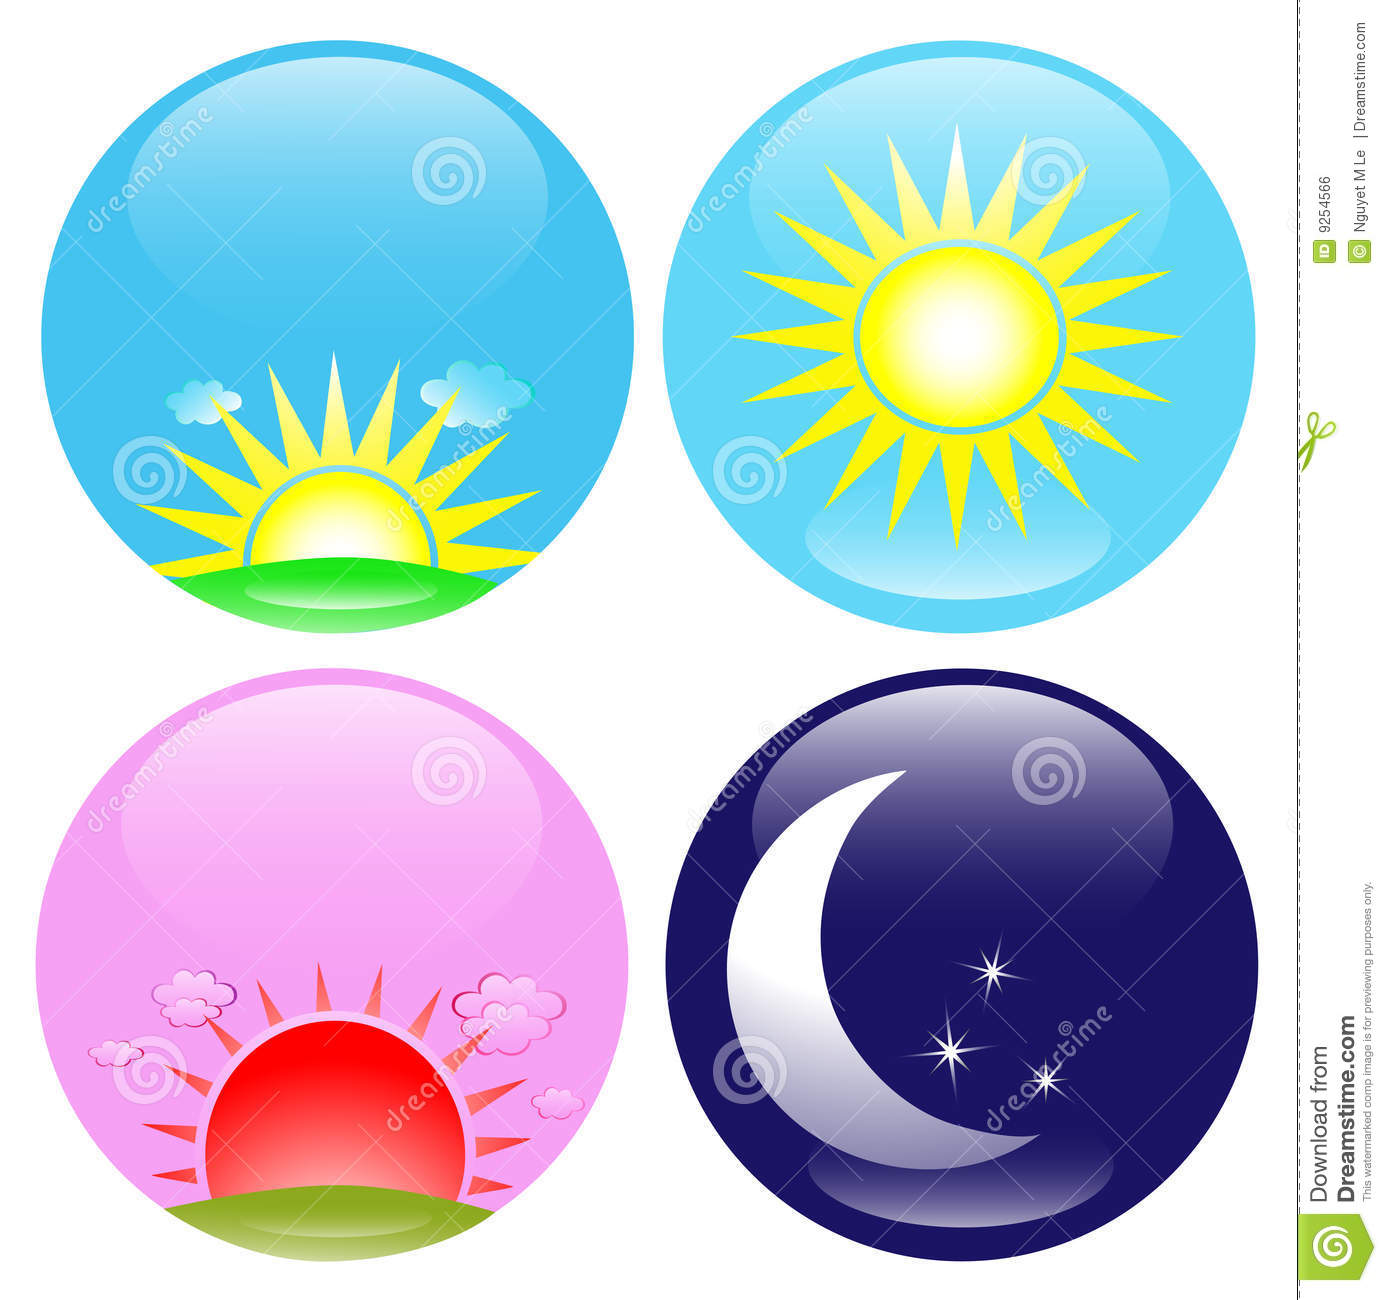 day and night icons set royalty free stock image image Morning Sunrise Clip Art sunrise clipart free